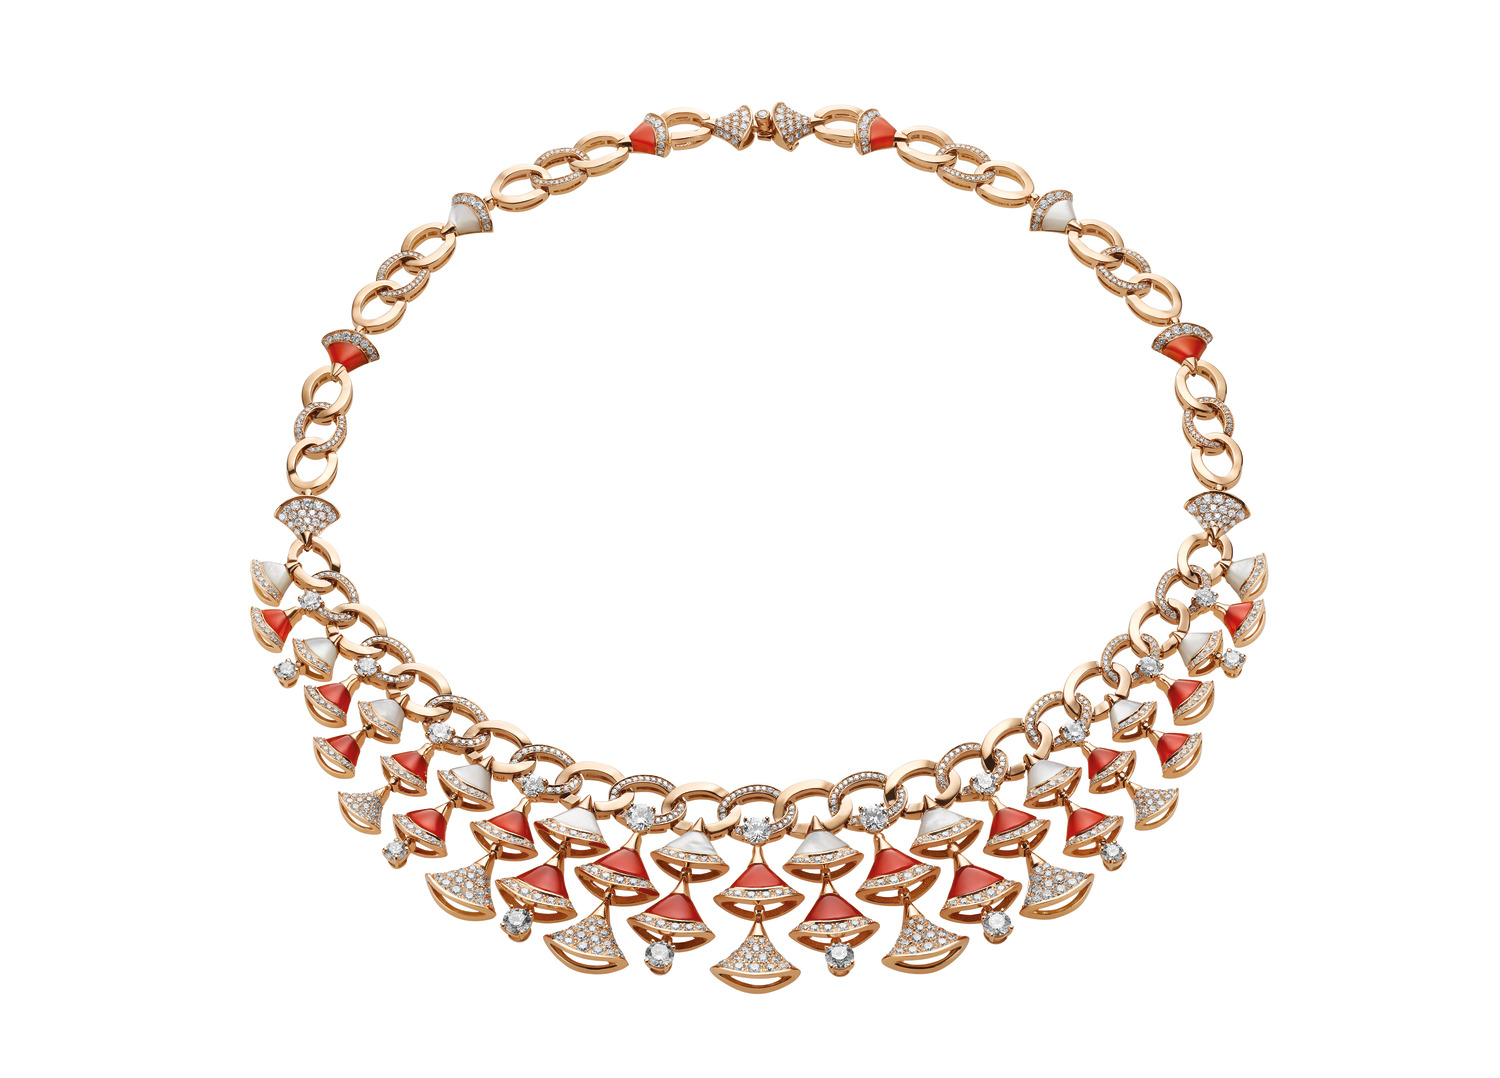 BVLGARI DIVAS' DREAM necklace in 18 kt rose gold